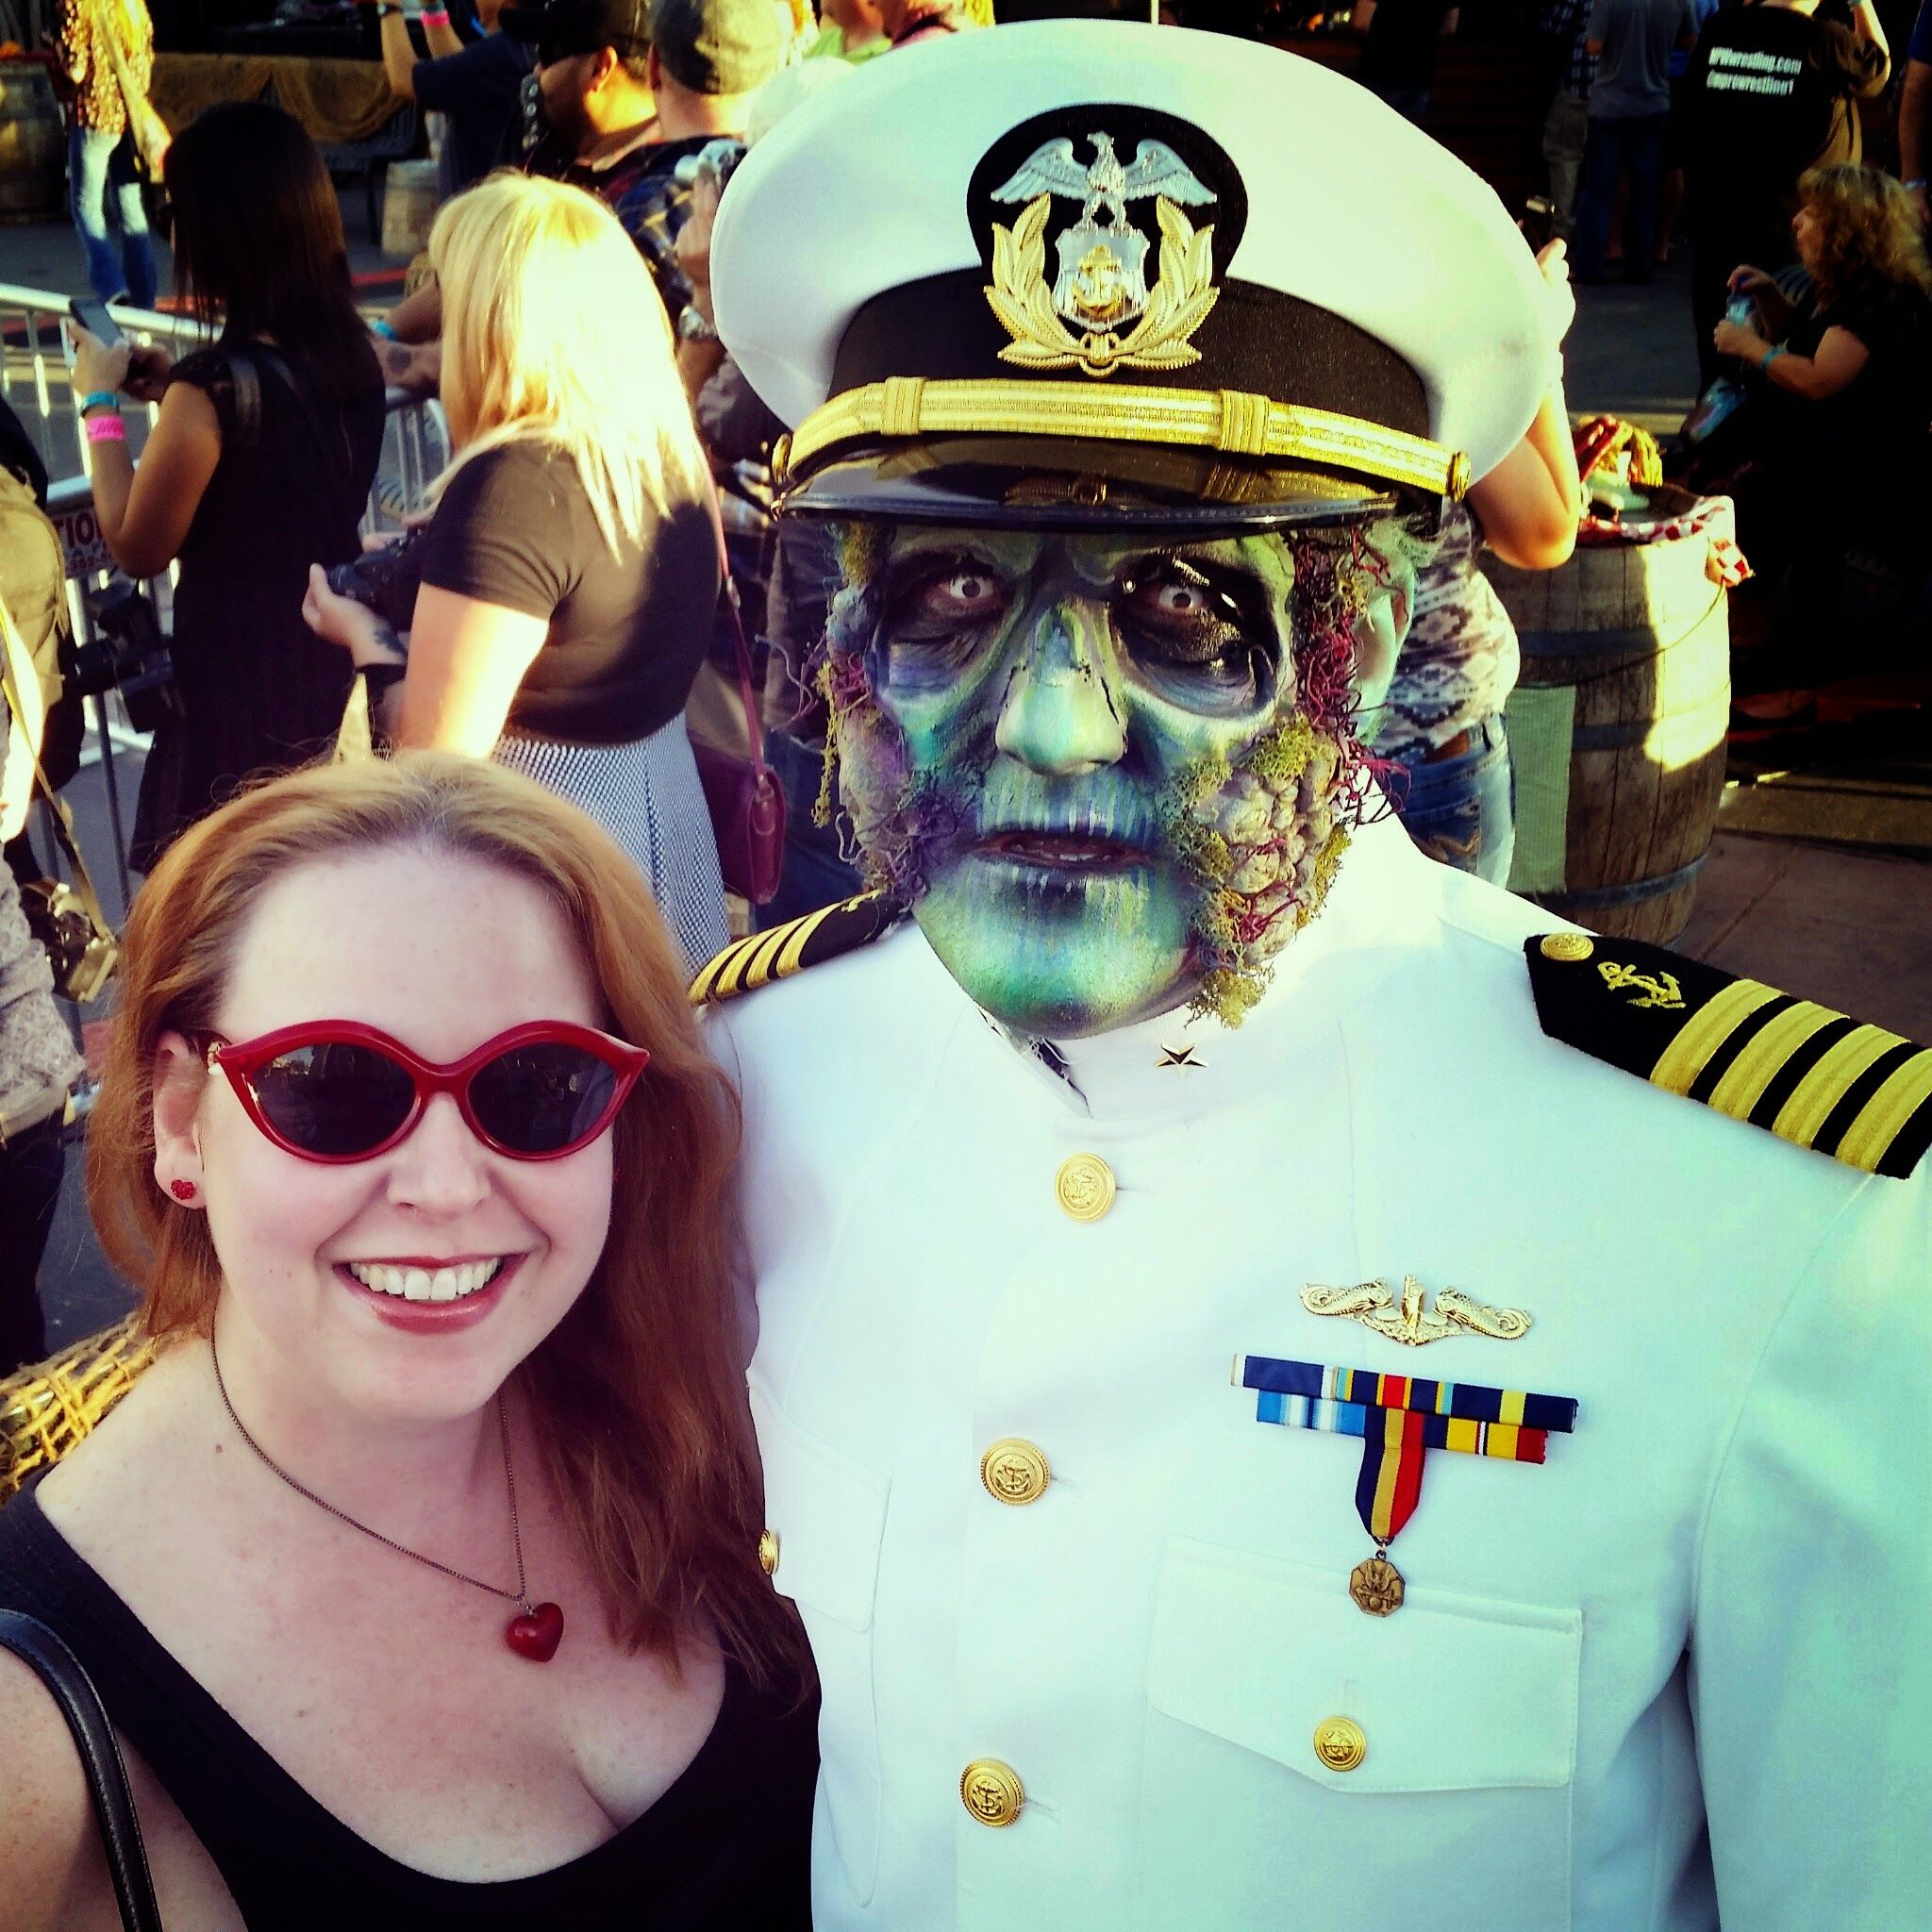 qmdarkharbor is an awesome #halloween #event on the queen mary